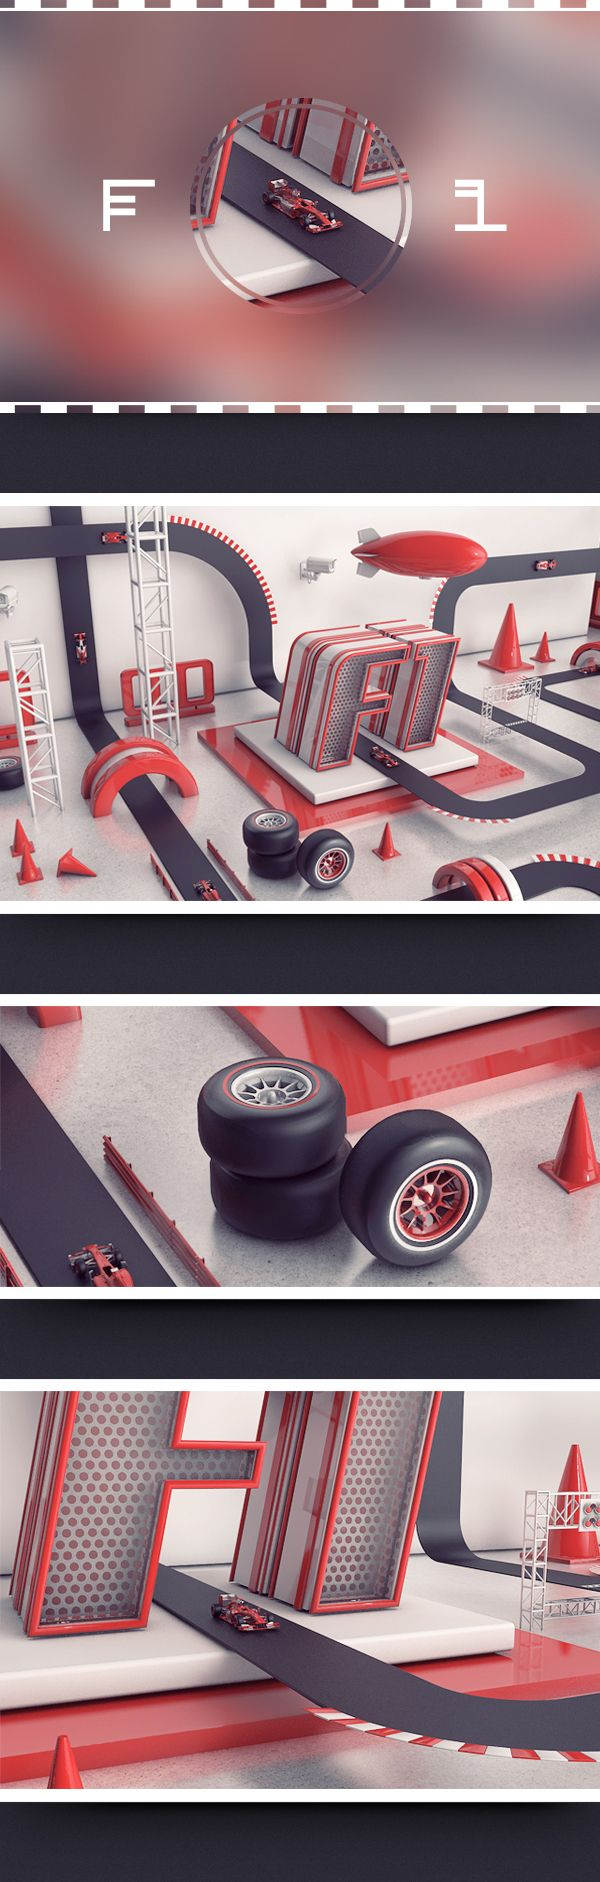 F1 by Harley Spick, via Behance